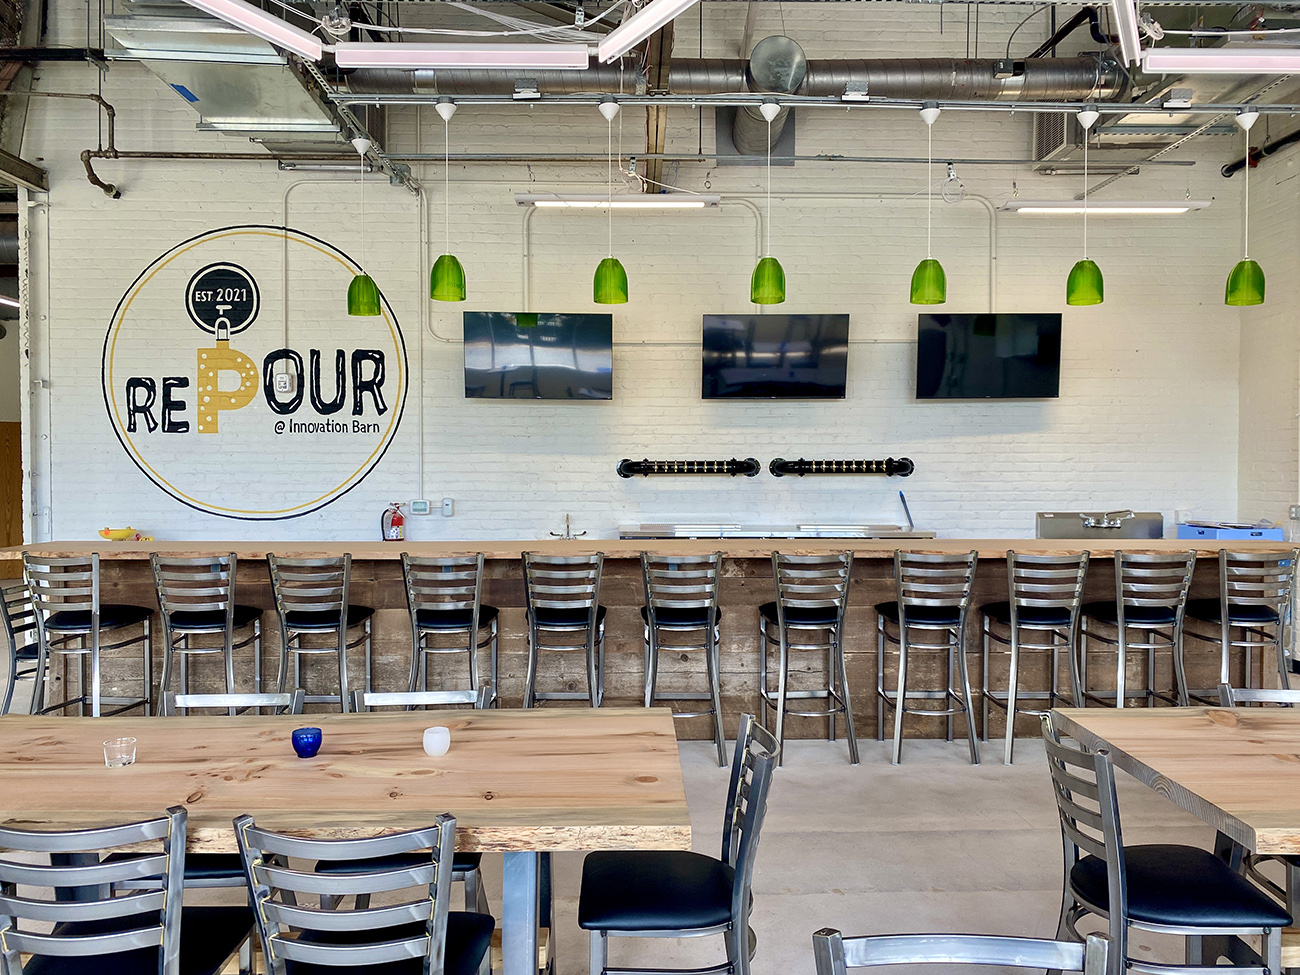 Charlotte's Innovation Barn to open in July with sustainable craft beer bar